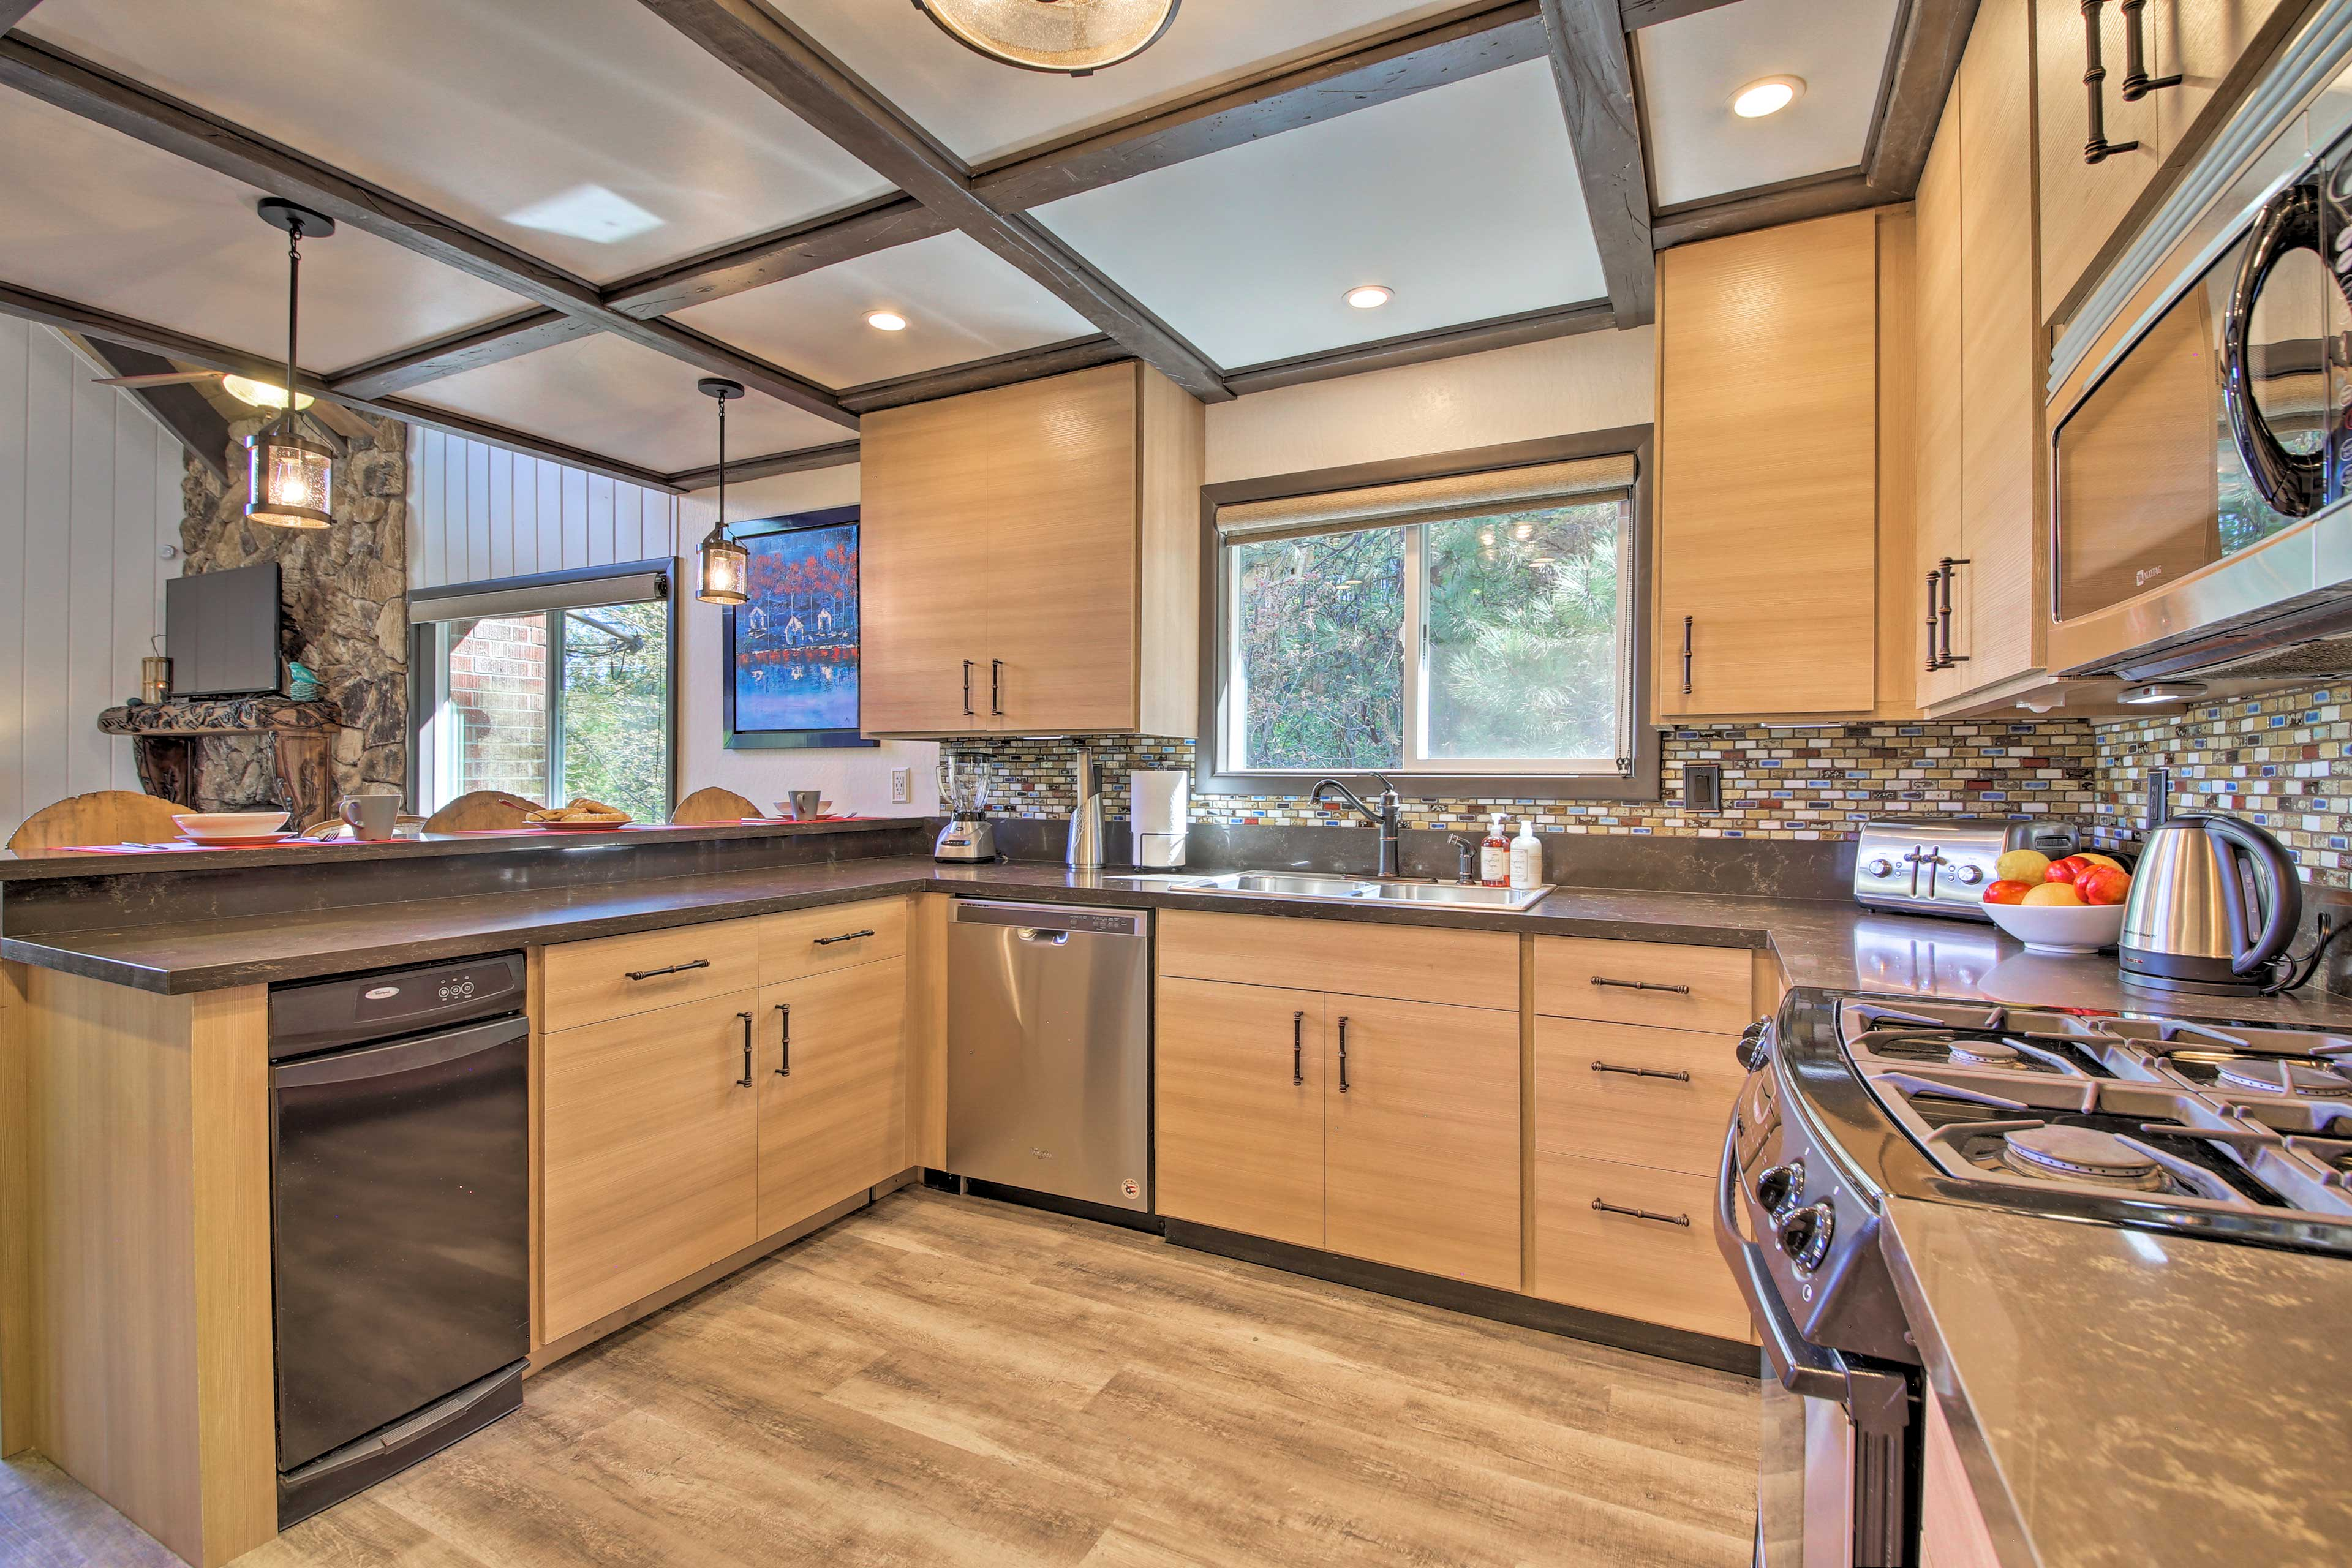 Complete with a blender, toaster, and coffeemaker, this kitchen has it all!